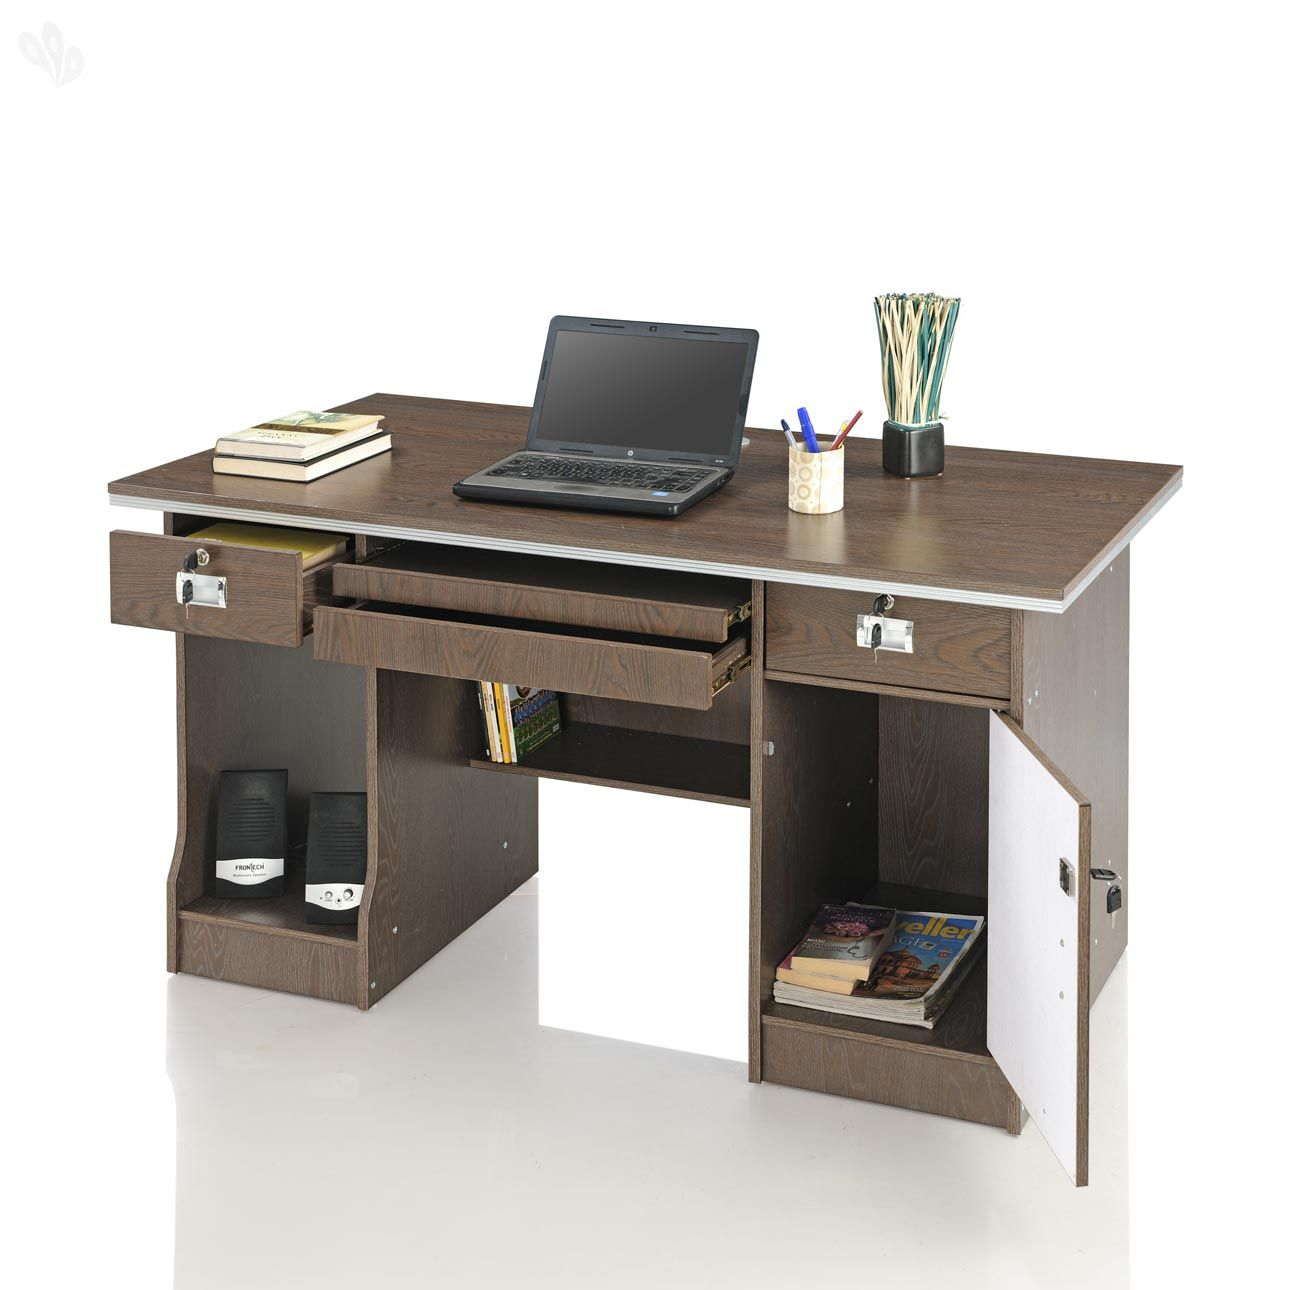 Buy Royal Oak Computer Table with Storage Drawers & Dark Finish